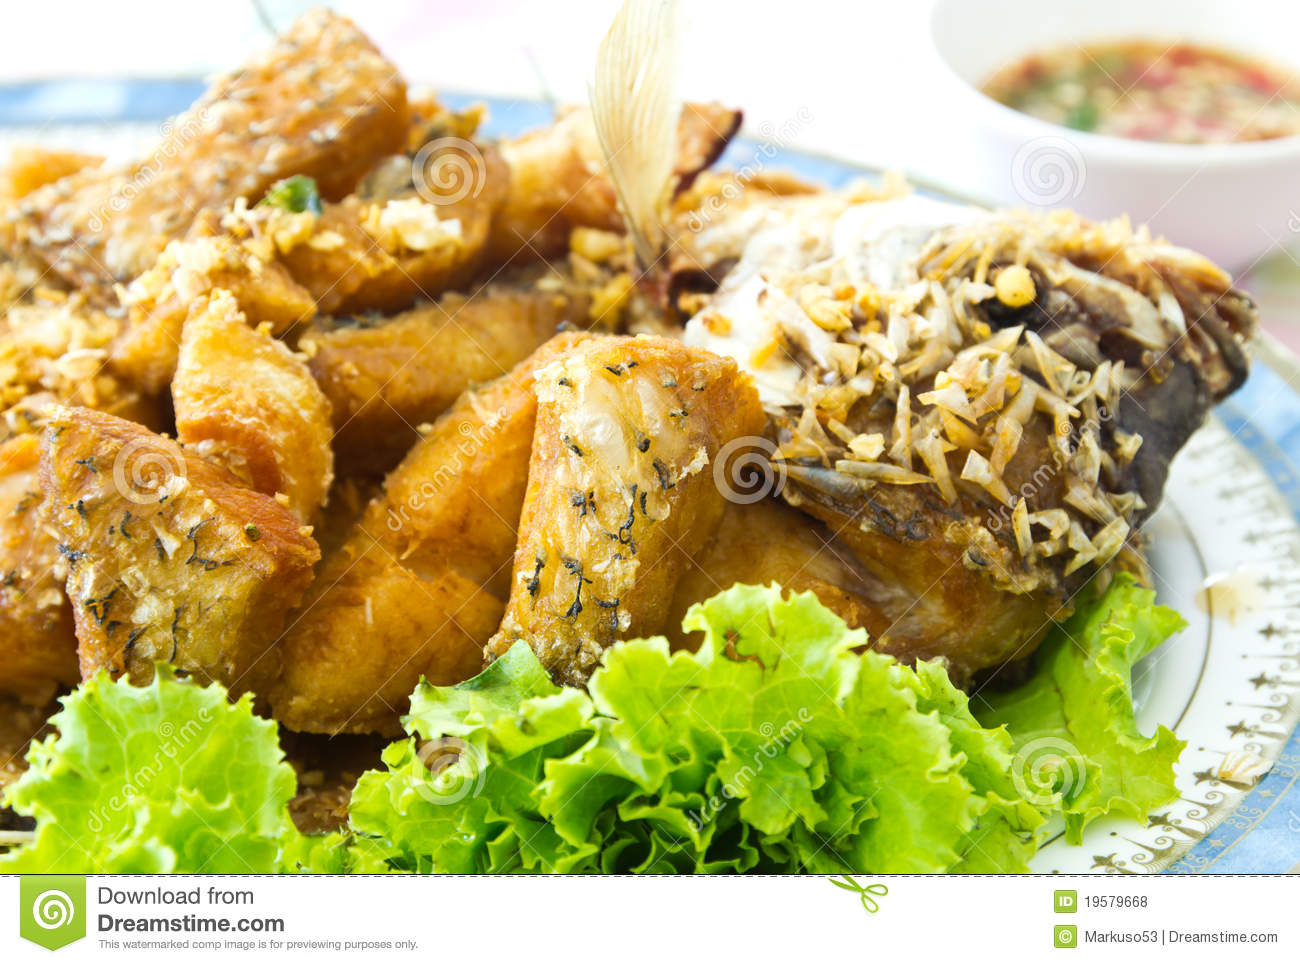 Fried fish royalty free stock photos image 19579668 for What to eat with fried fish